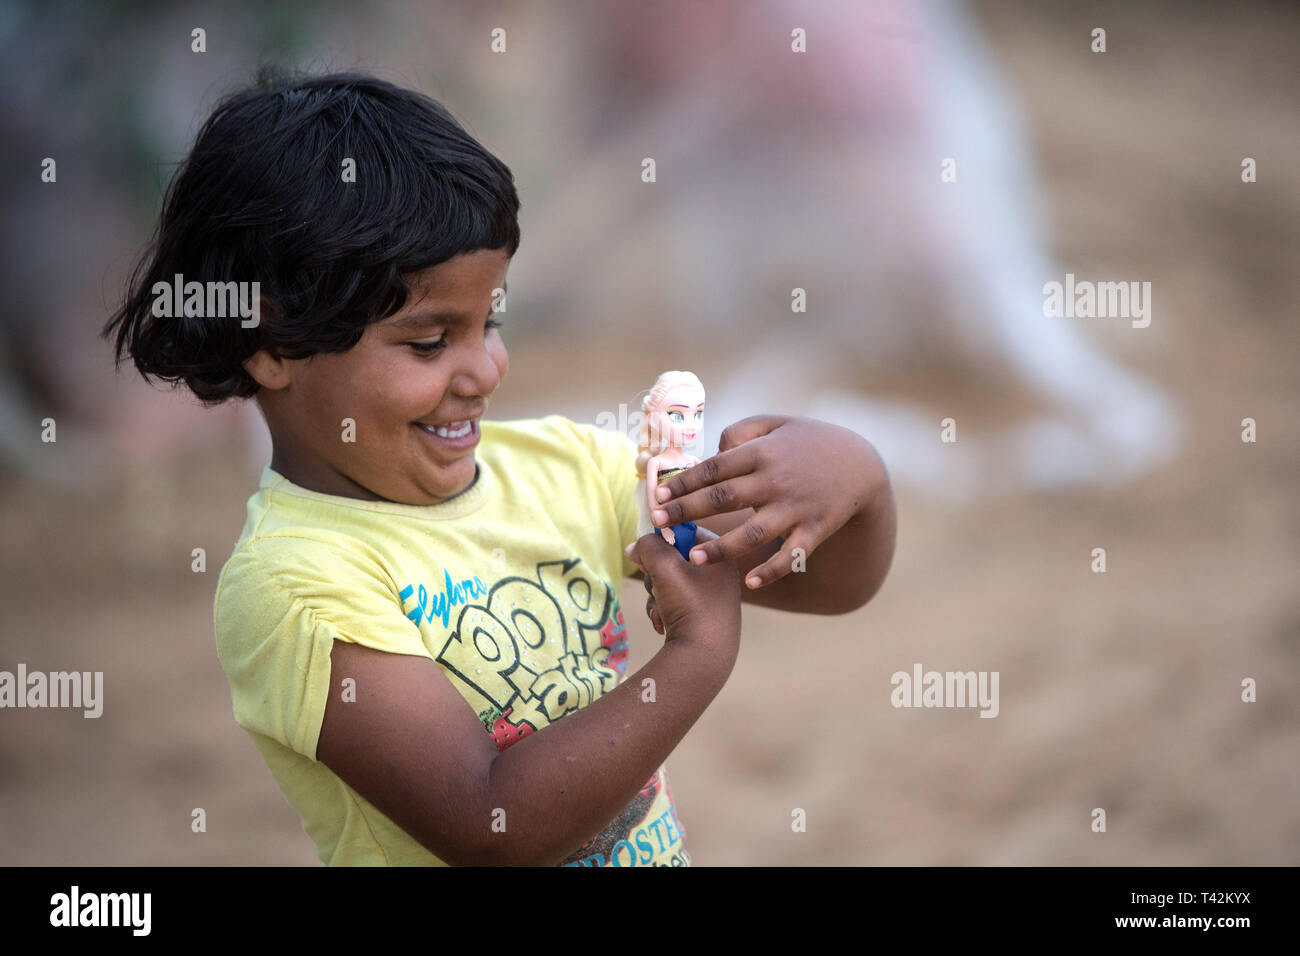 Khuzestan, Iran. 12th Apr, 2019. A girl plays with her doll at a village in Khuzestan province, Iran, on April 12, 2019. The Iranian authorities ordered this week nearly 70,000 people to flee their homes as floodwater poured into Ahvaz, capital city of the southwestern province of Khuzestan. Credit: Ahmad Halabisaz/Xinhua/Alamy Live News - Stock Image